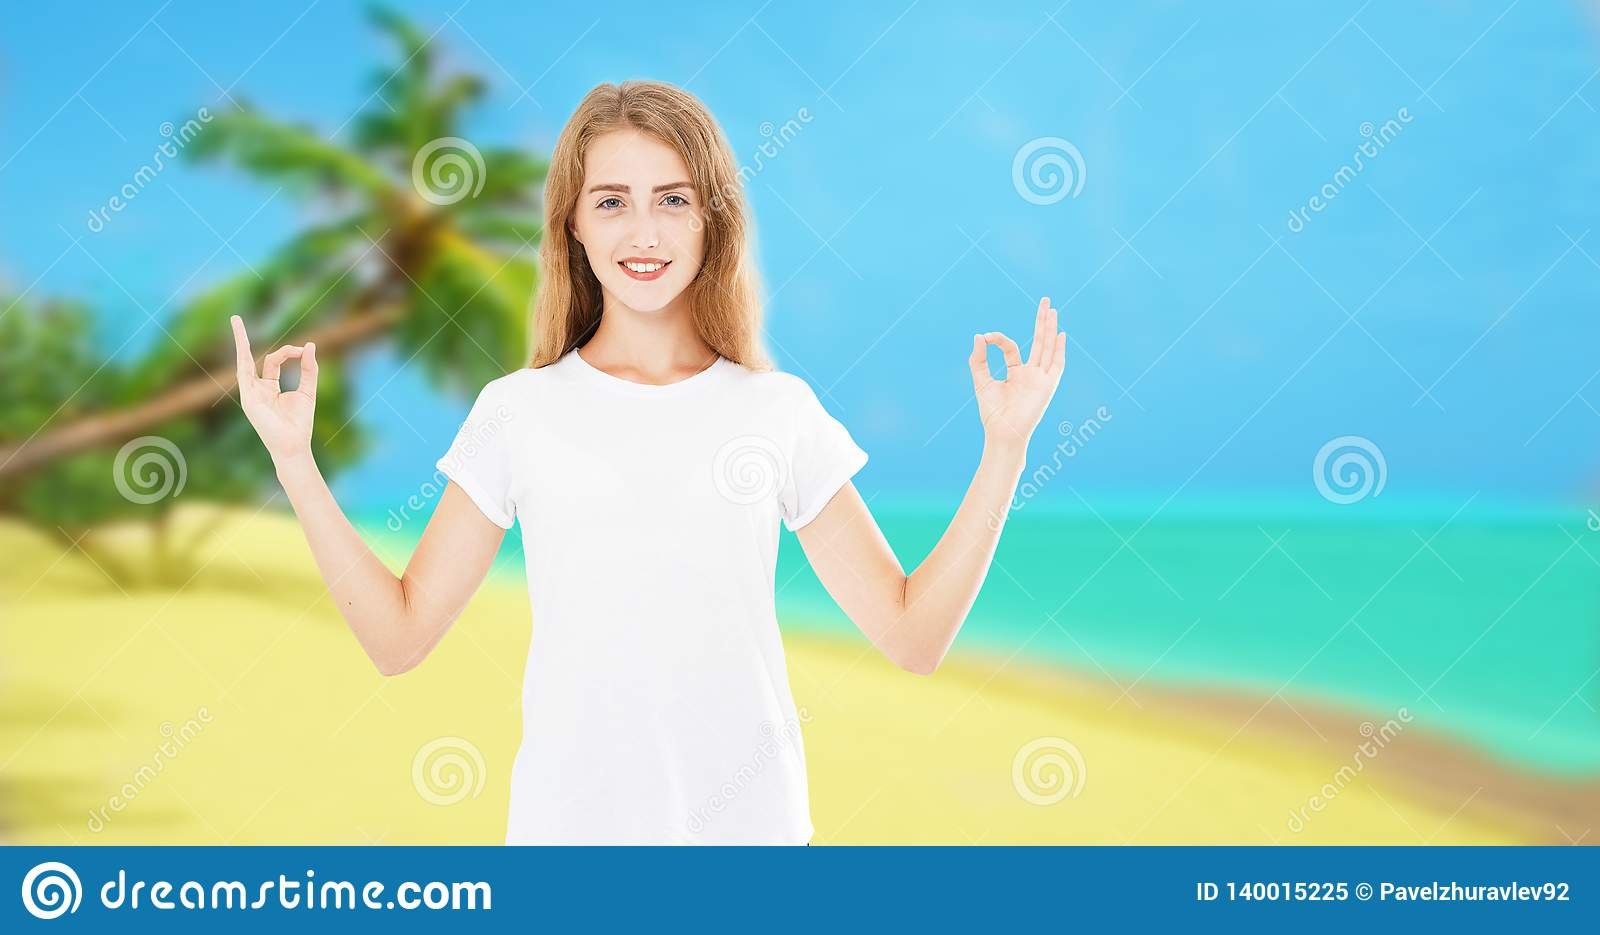 Woman meditating on tropical palm beach hands up. Beautiful female model enjoying sun in worship and meditation zen. Islands